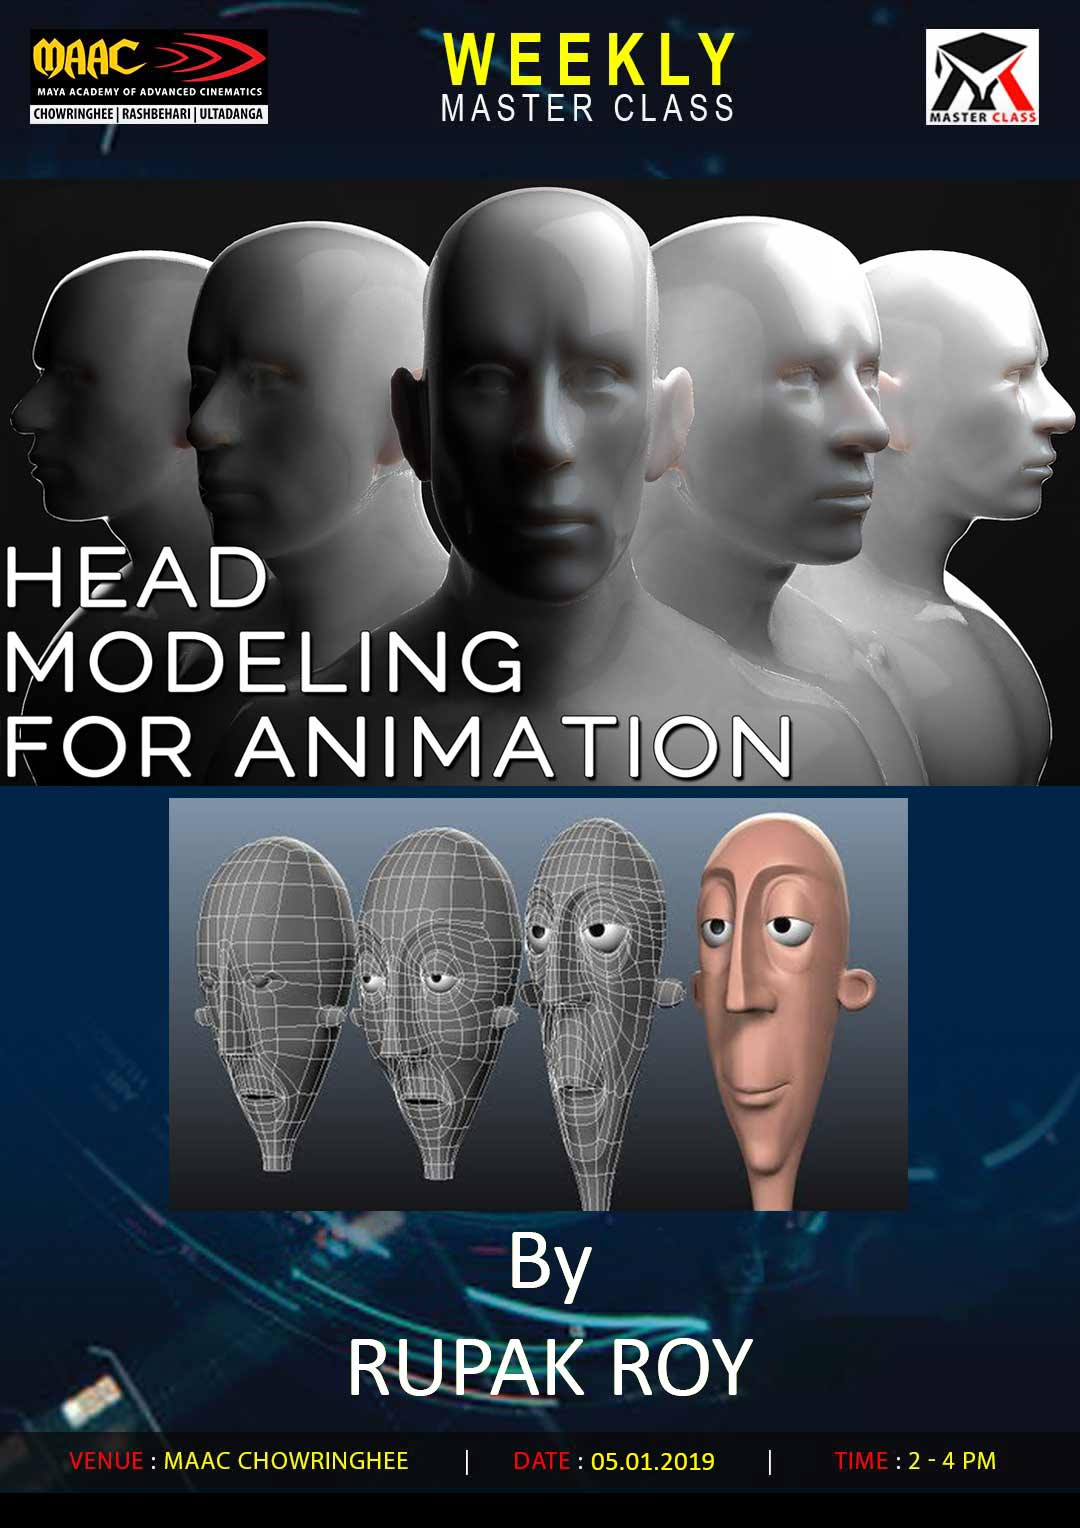 Weekly Master Class on Head Modeling for Animation